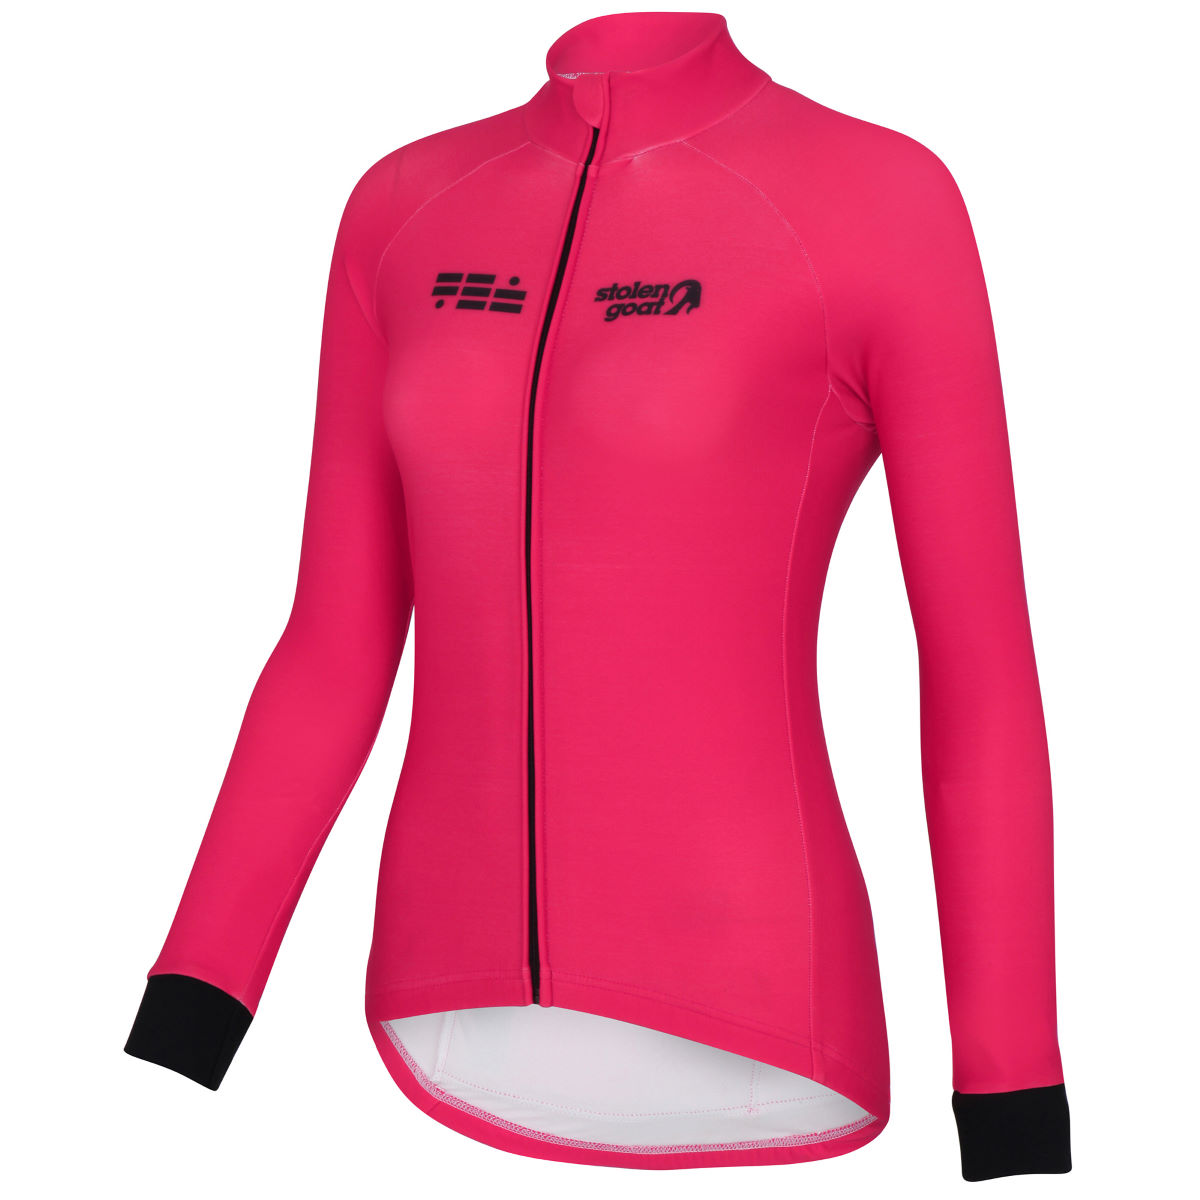 Maillot Femme Stolen Goat Orkaan Everyday (manches longues) - XS